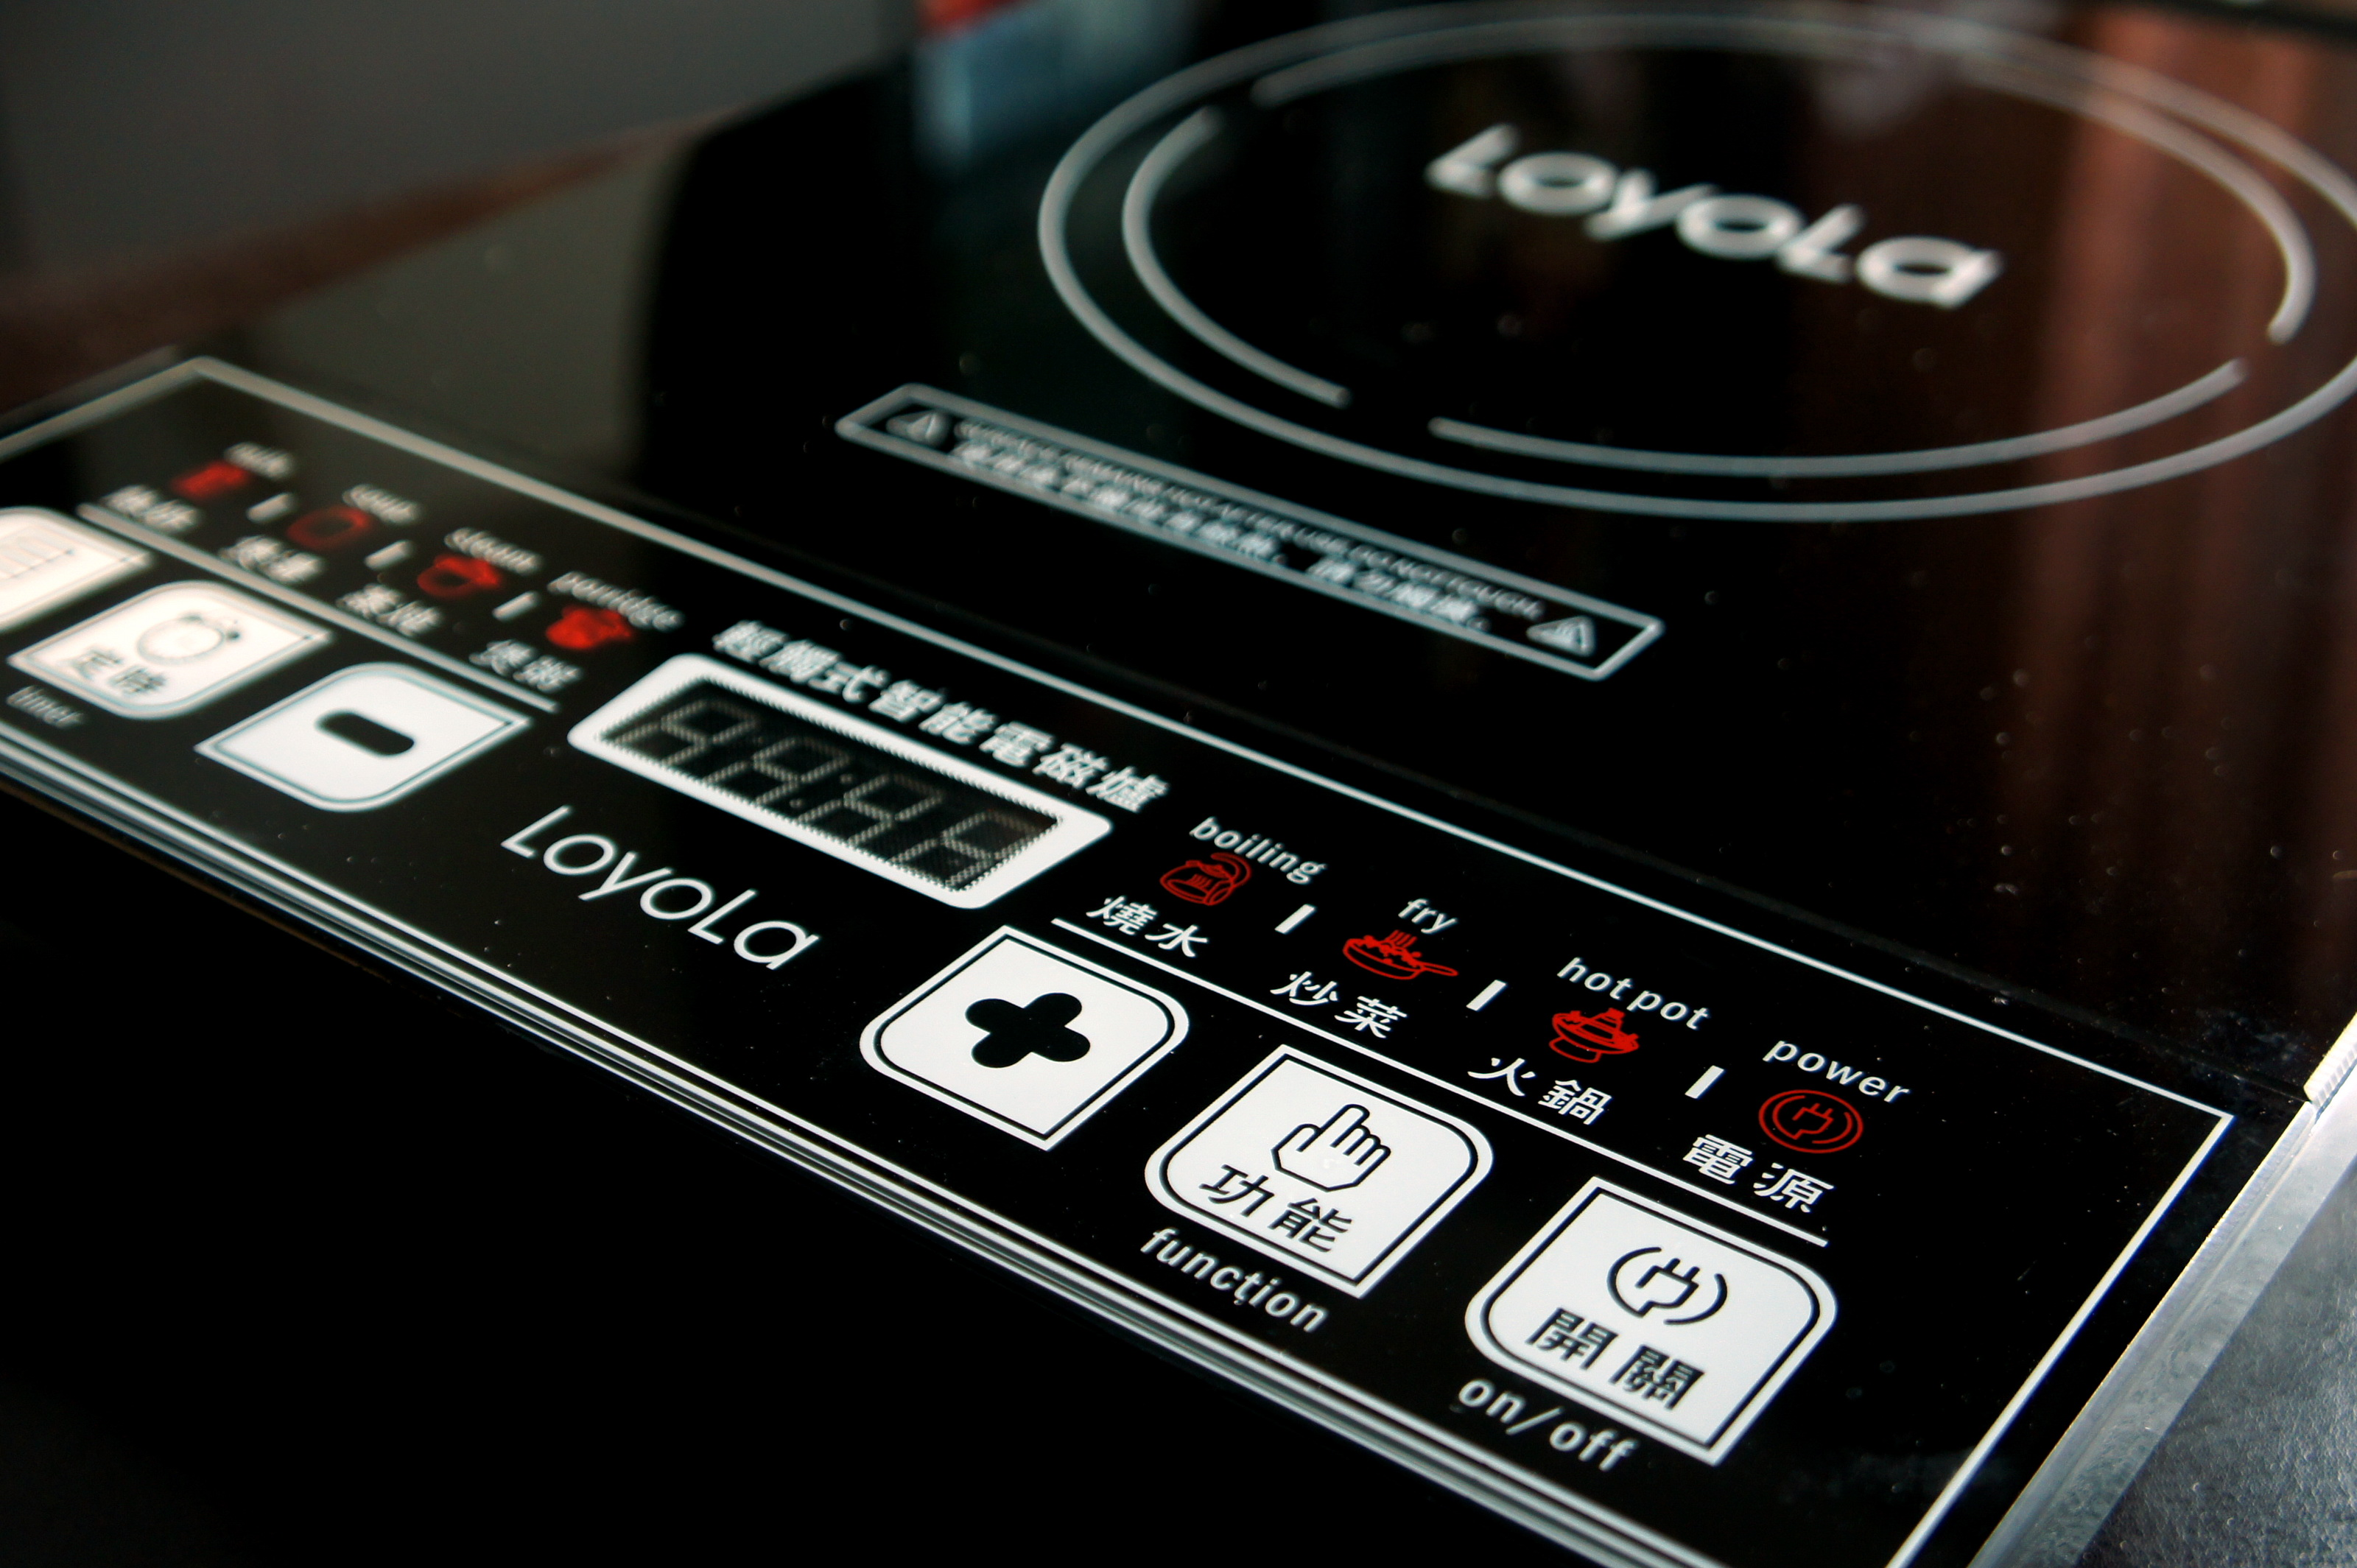 Best Portable Induction Cooktop 2020 7 Best Portable Induction Cooktops in 2020   Think For Home